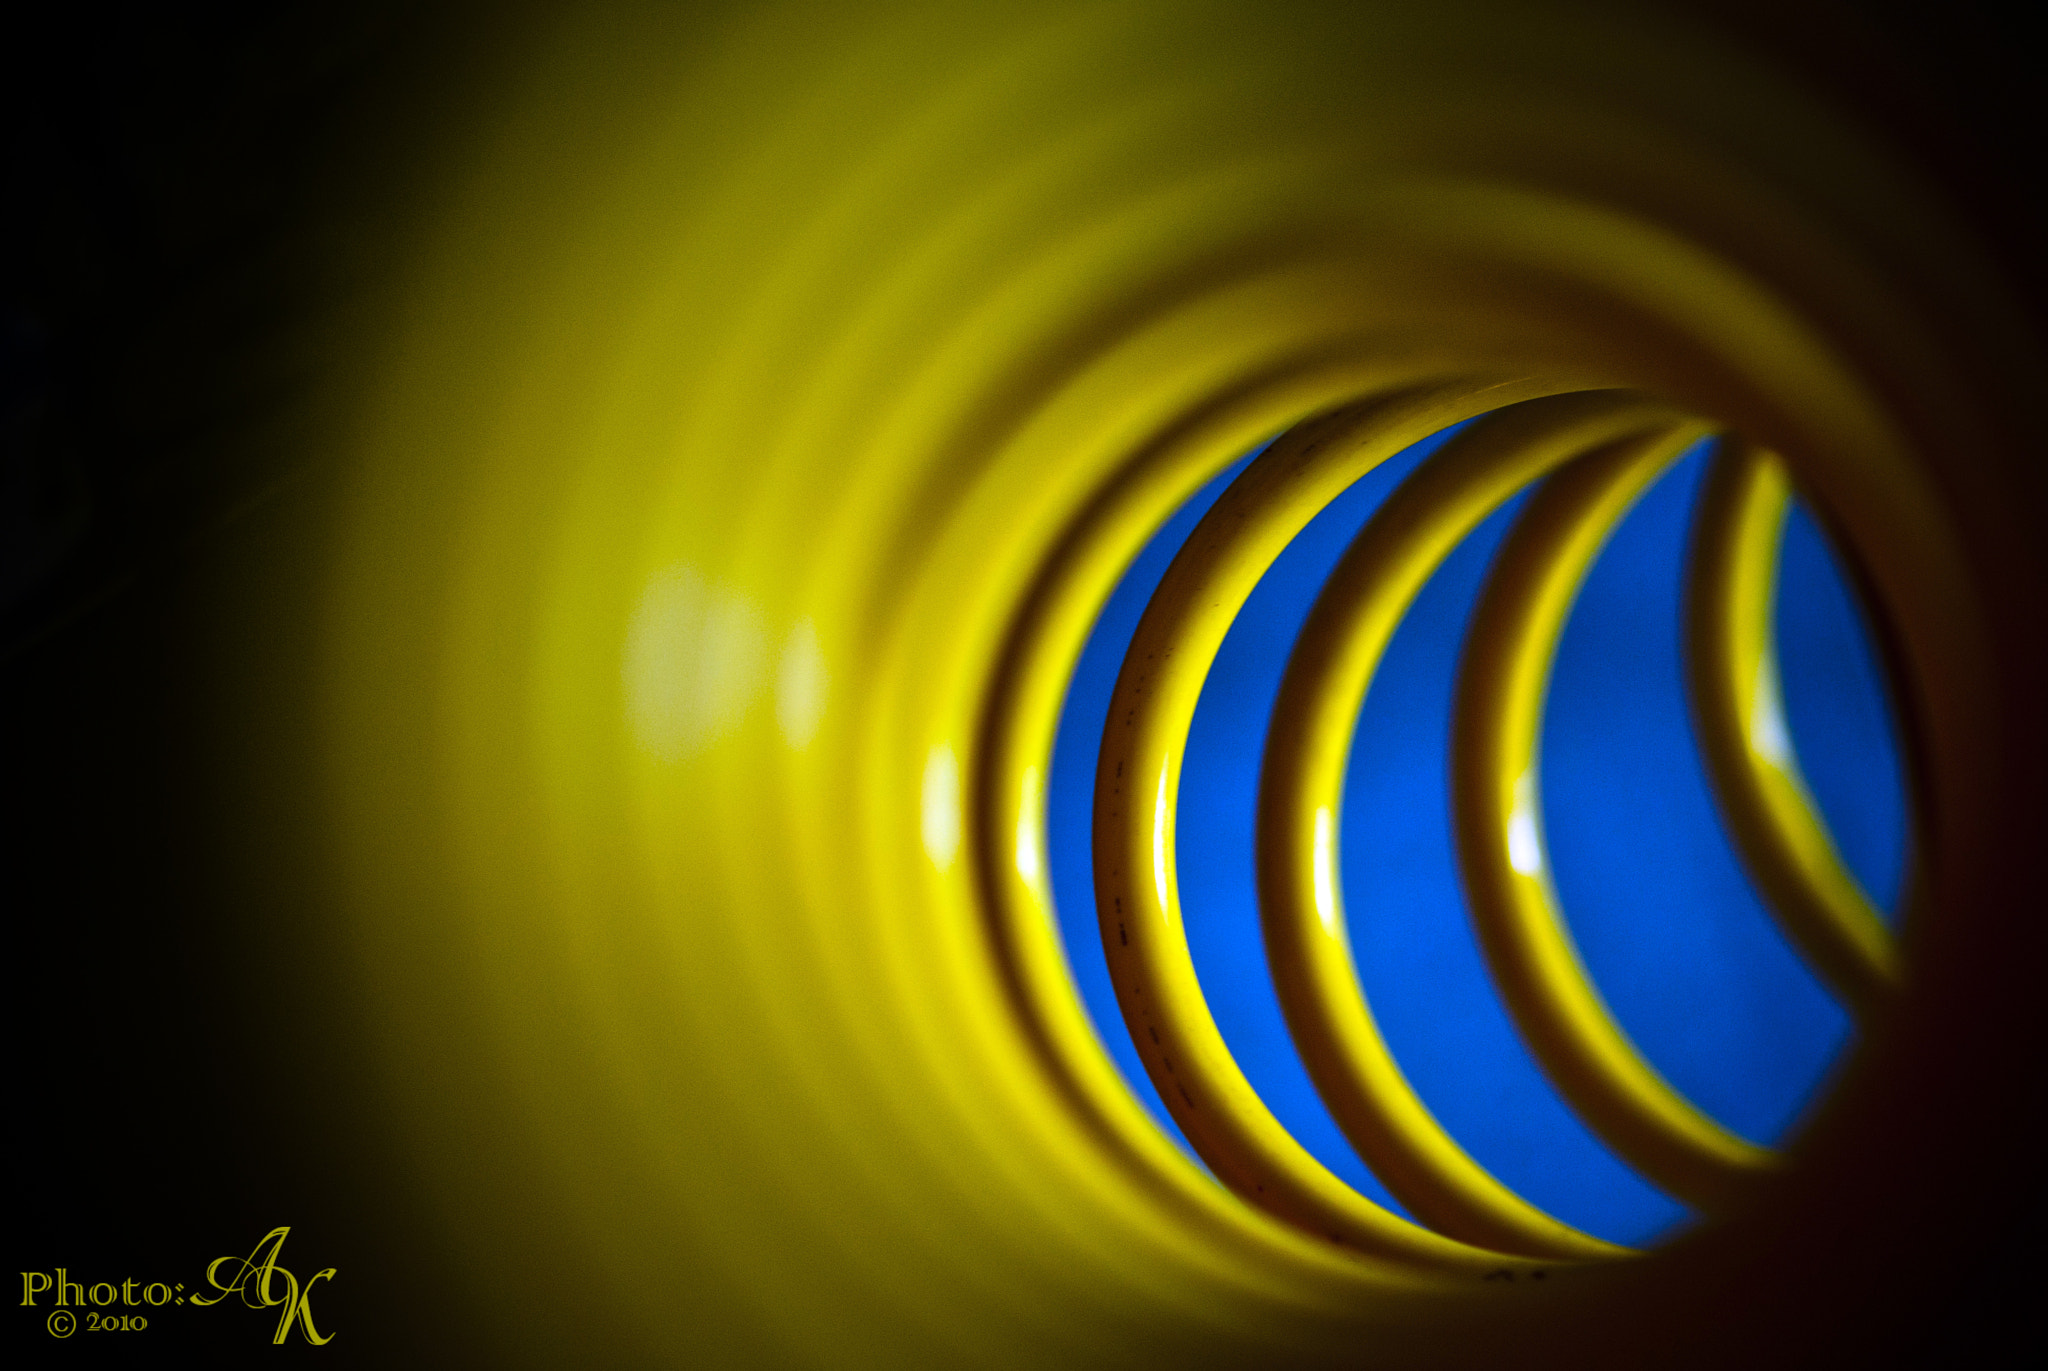 Photograph Through the Coil Hose by Andy Krzyzanowski on 500px